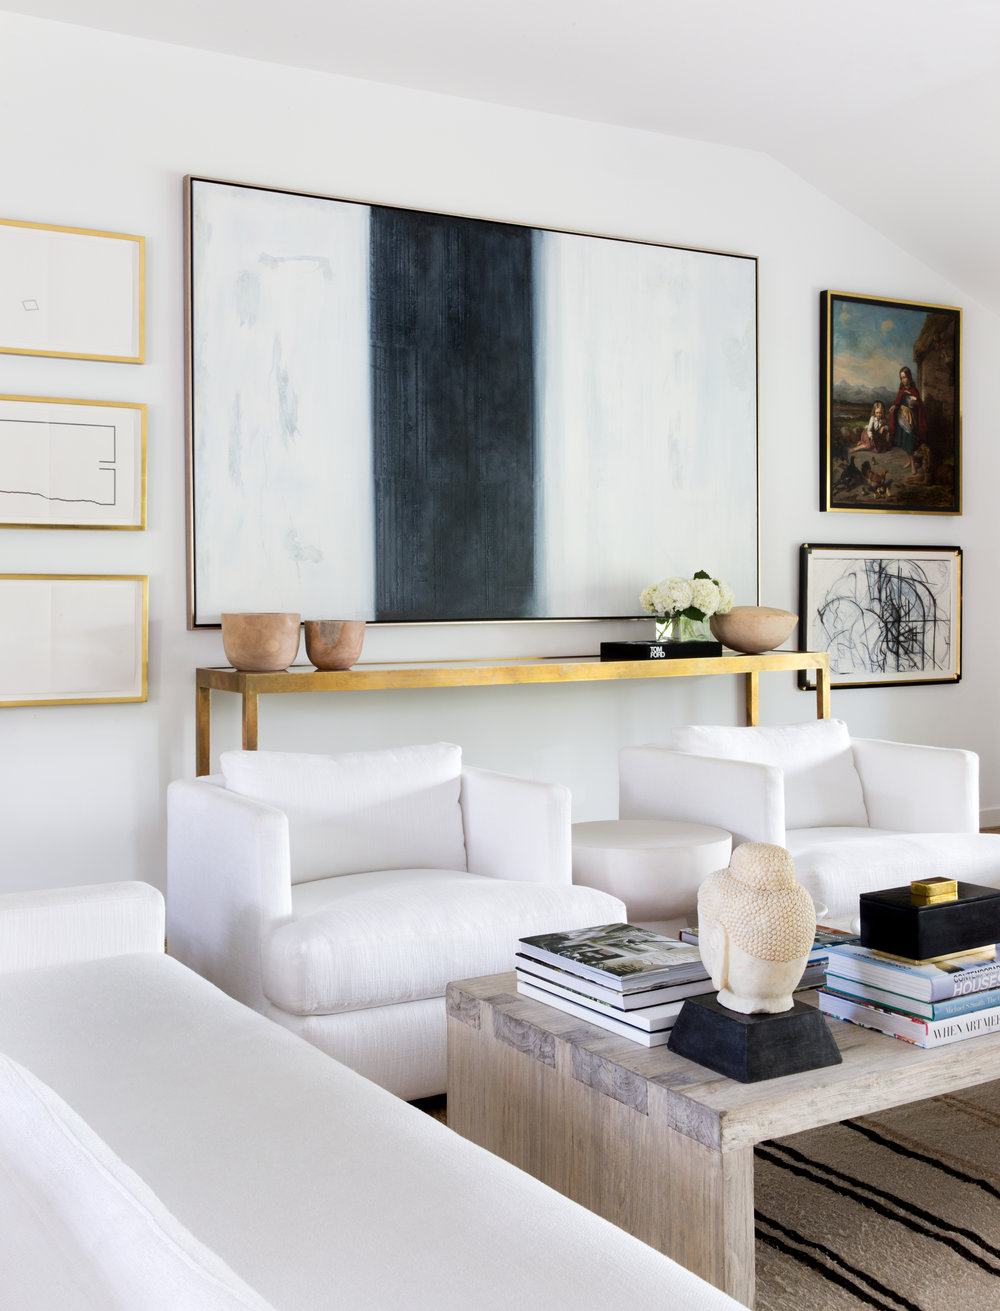 Living Room, White Furniture, Coffee Table Books, Wall Paintings